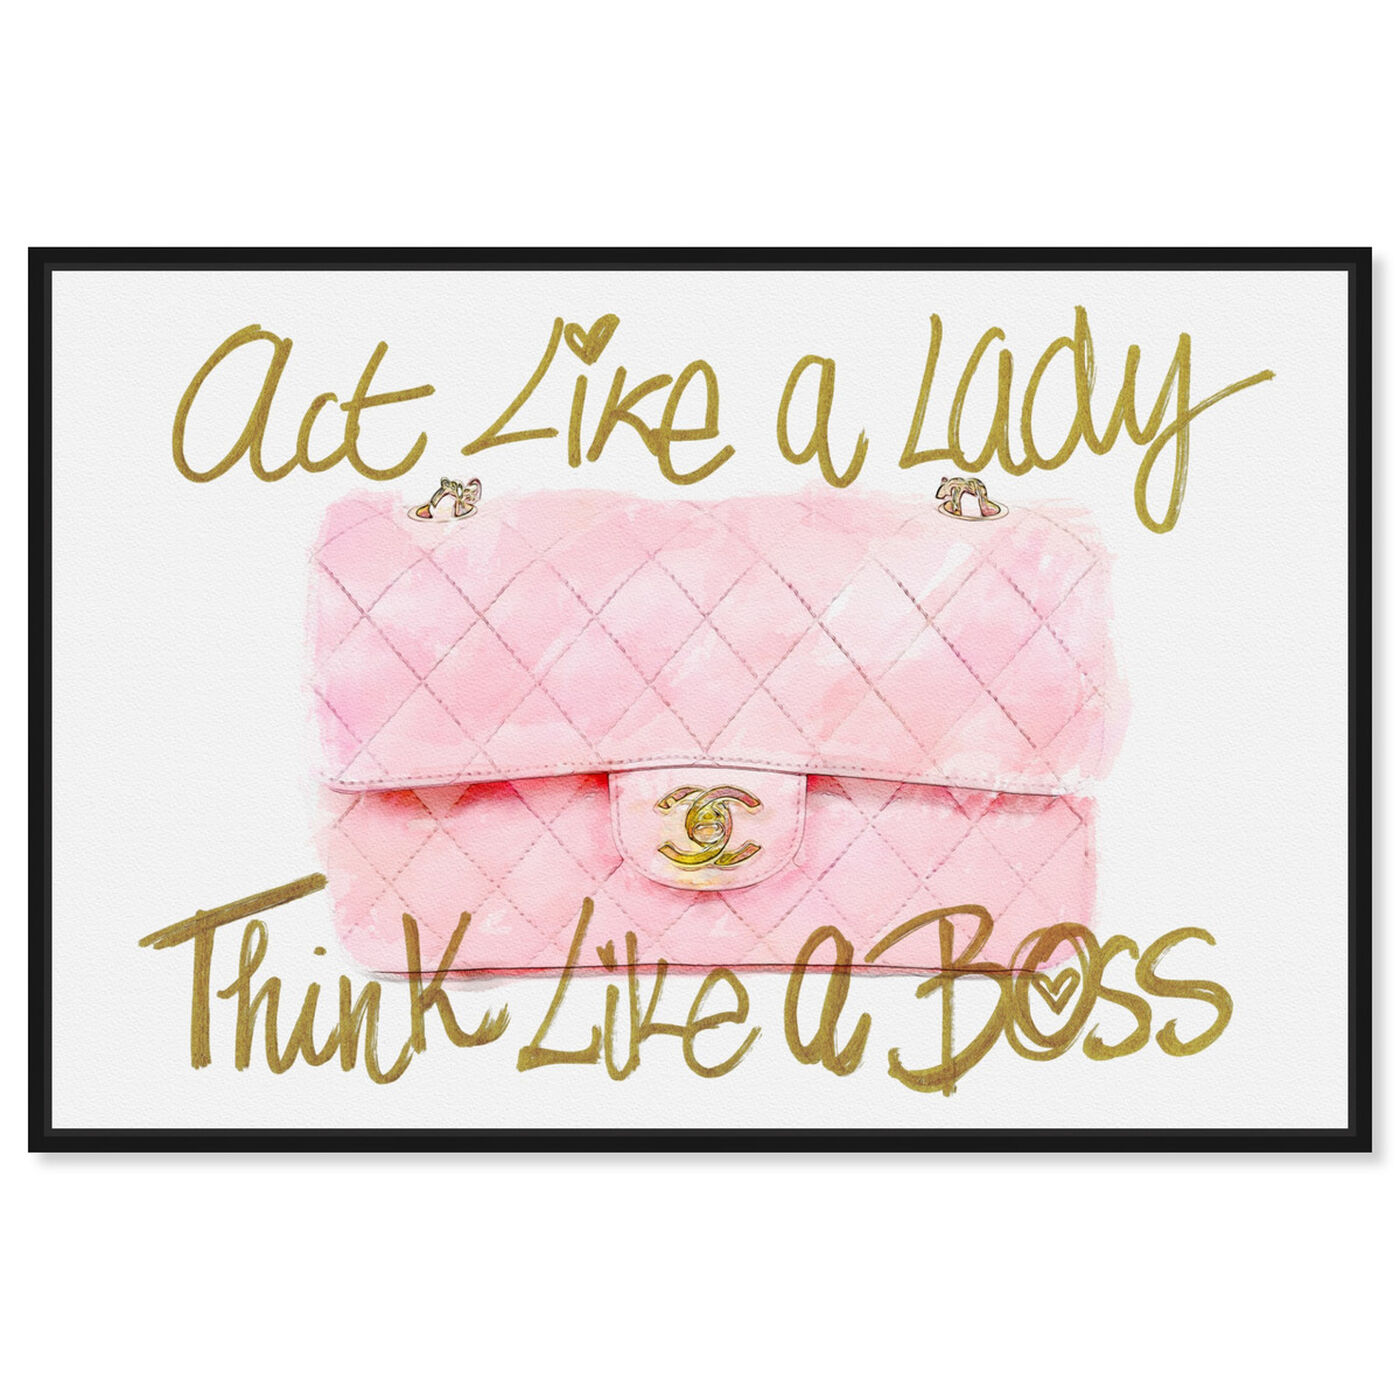 Front view of Like A Lady Boss featuring typography and quotes and empowered women quotes and sayings art.